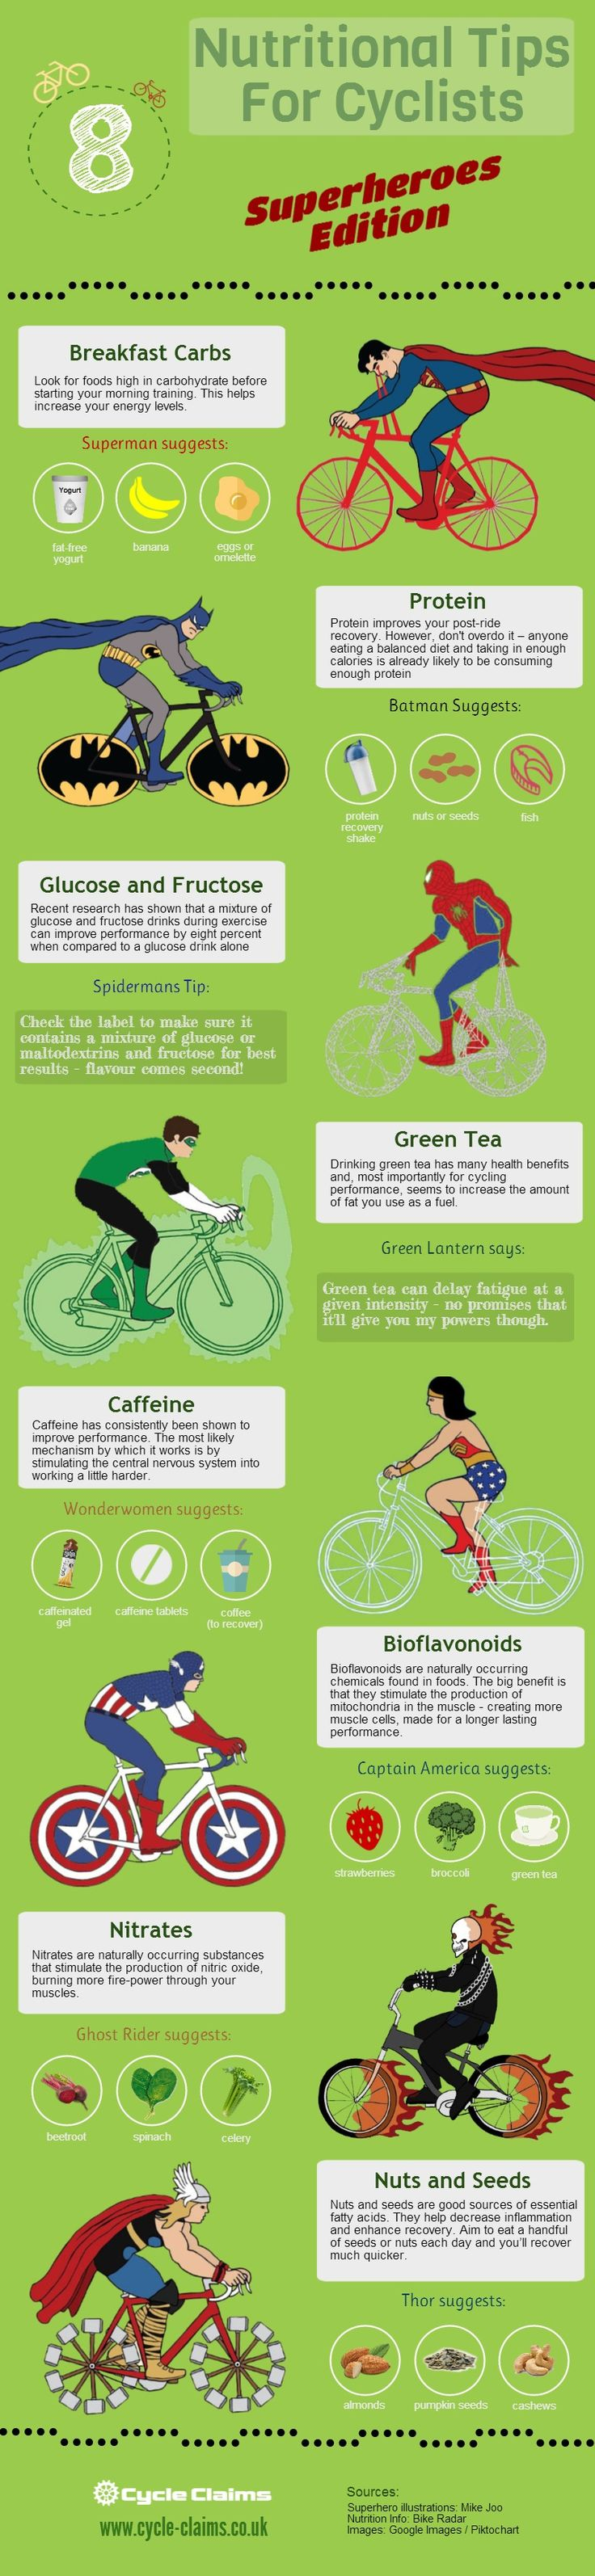 Forget the 8 nutritional tips, we're going to pin this for the super heroes!